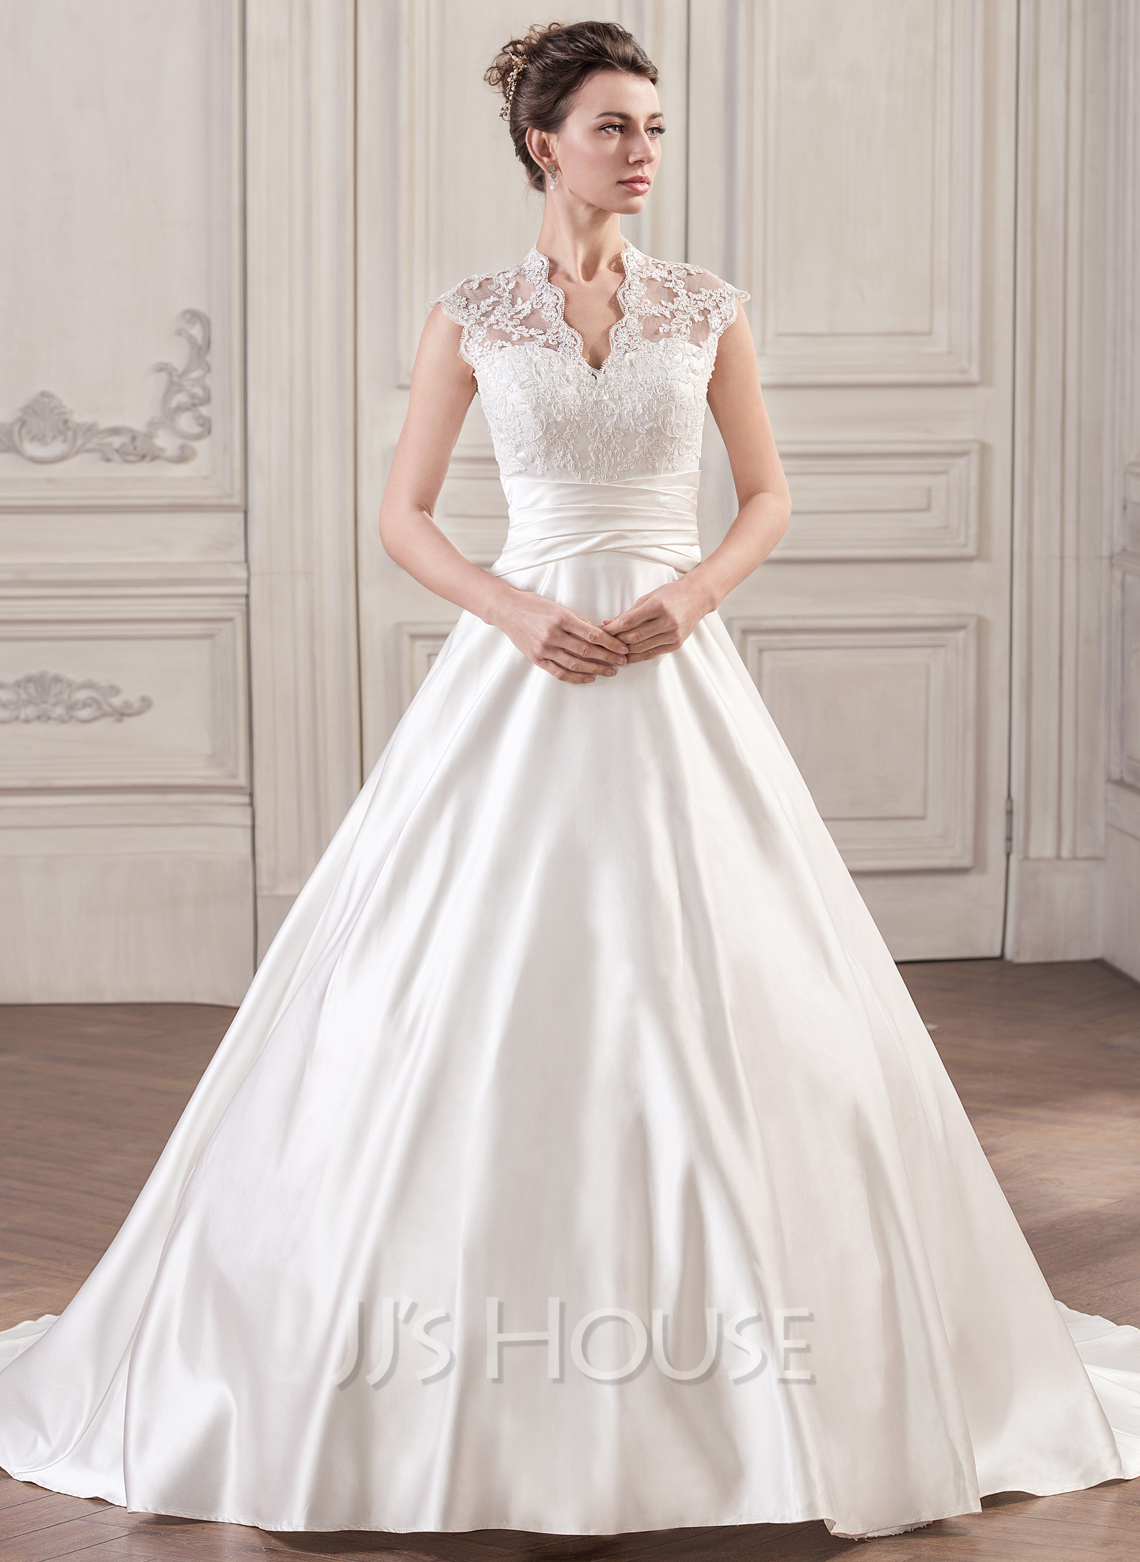 Ball Gown Wedding Dresses With Train : Ball gown v neck court train satin lace wedding dress with ruffle